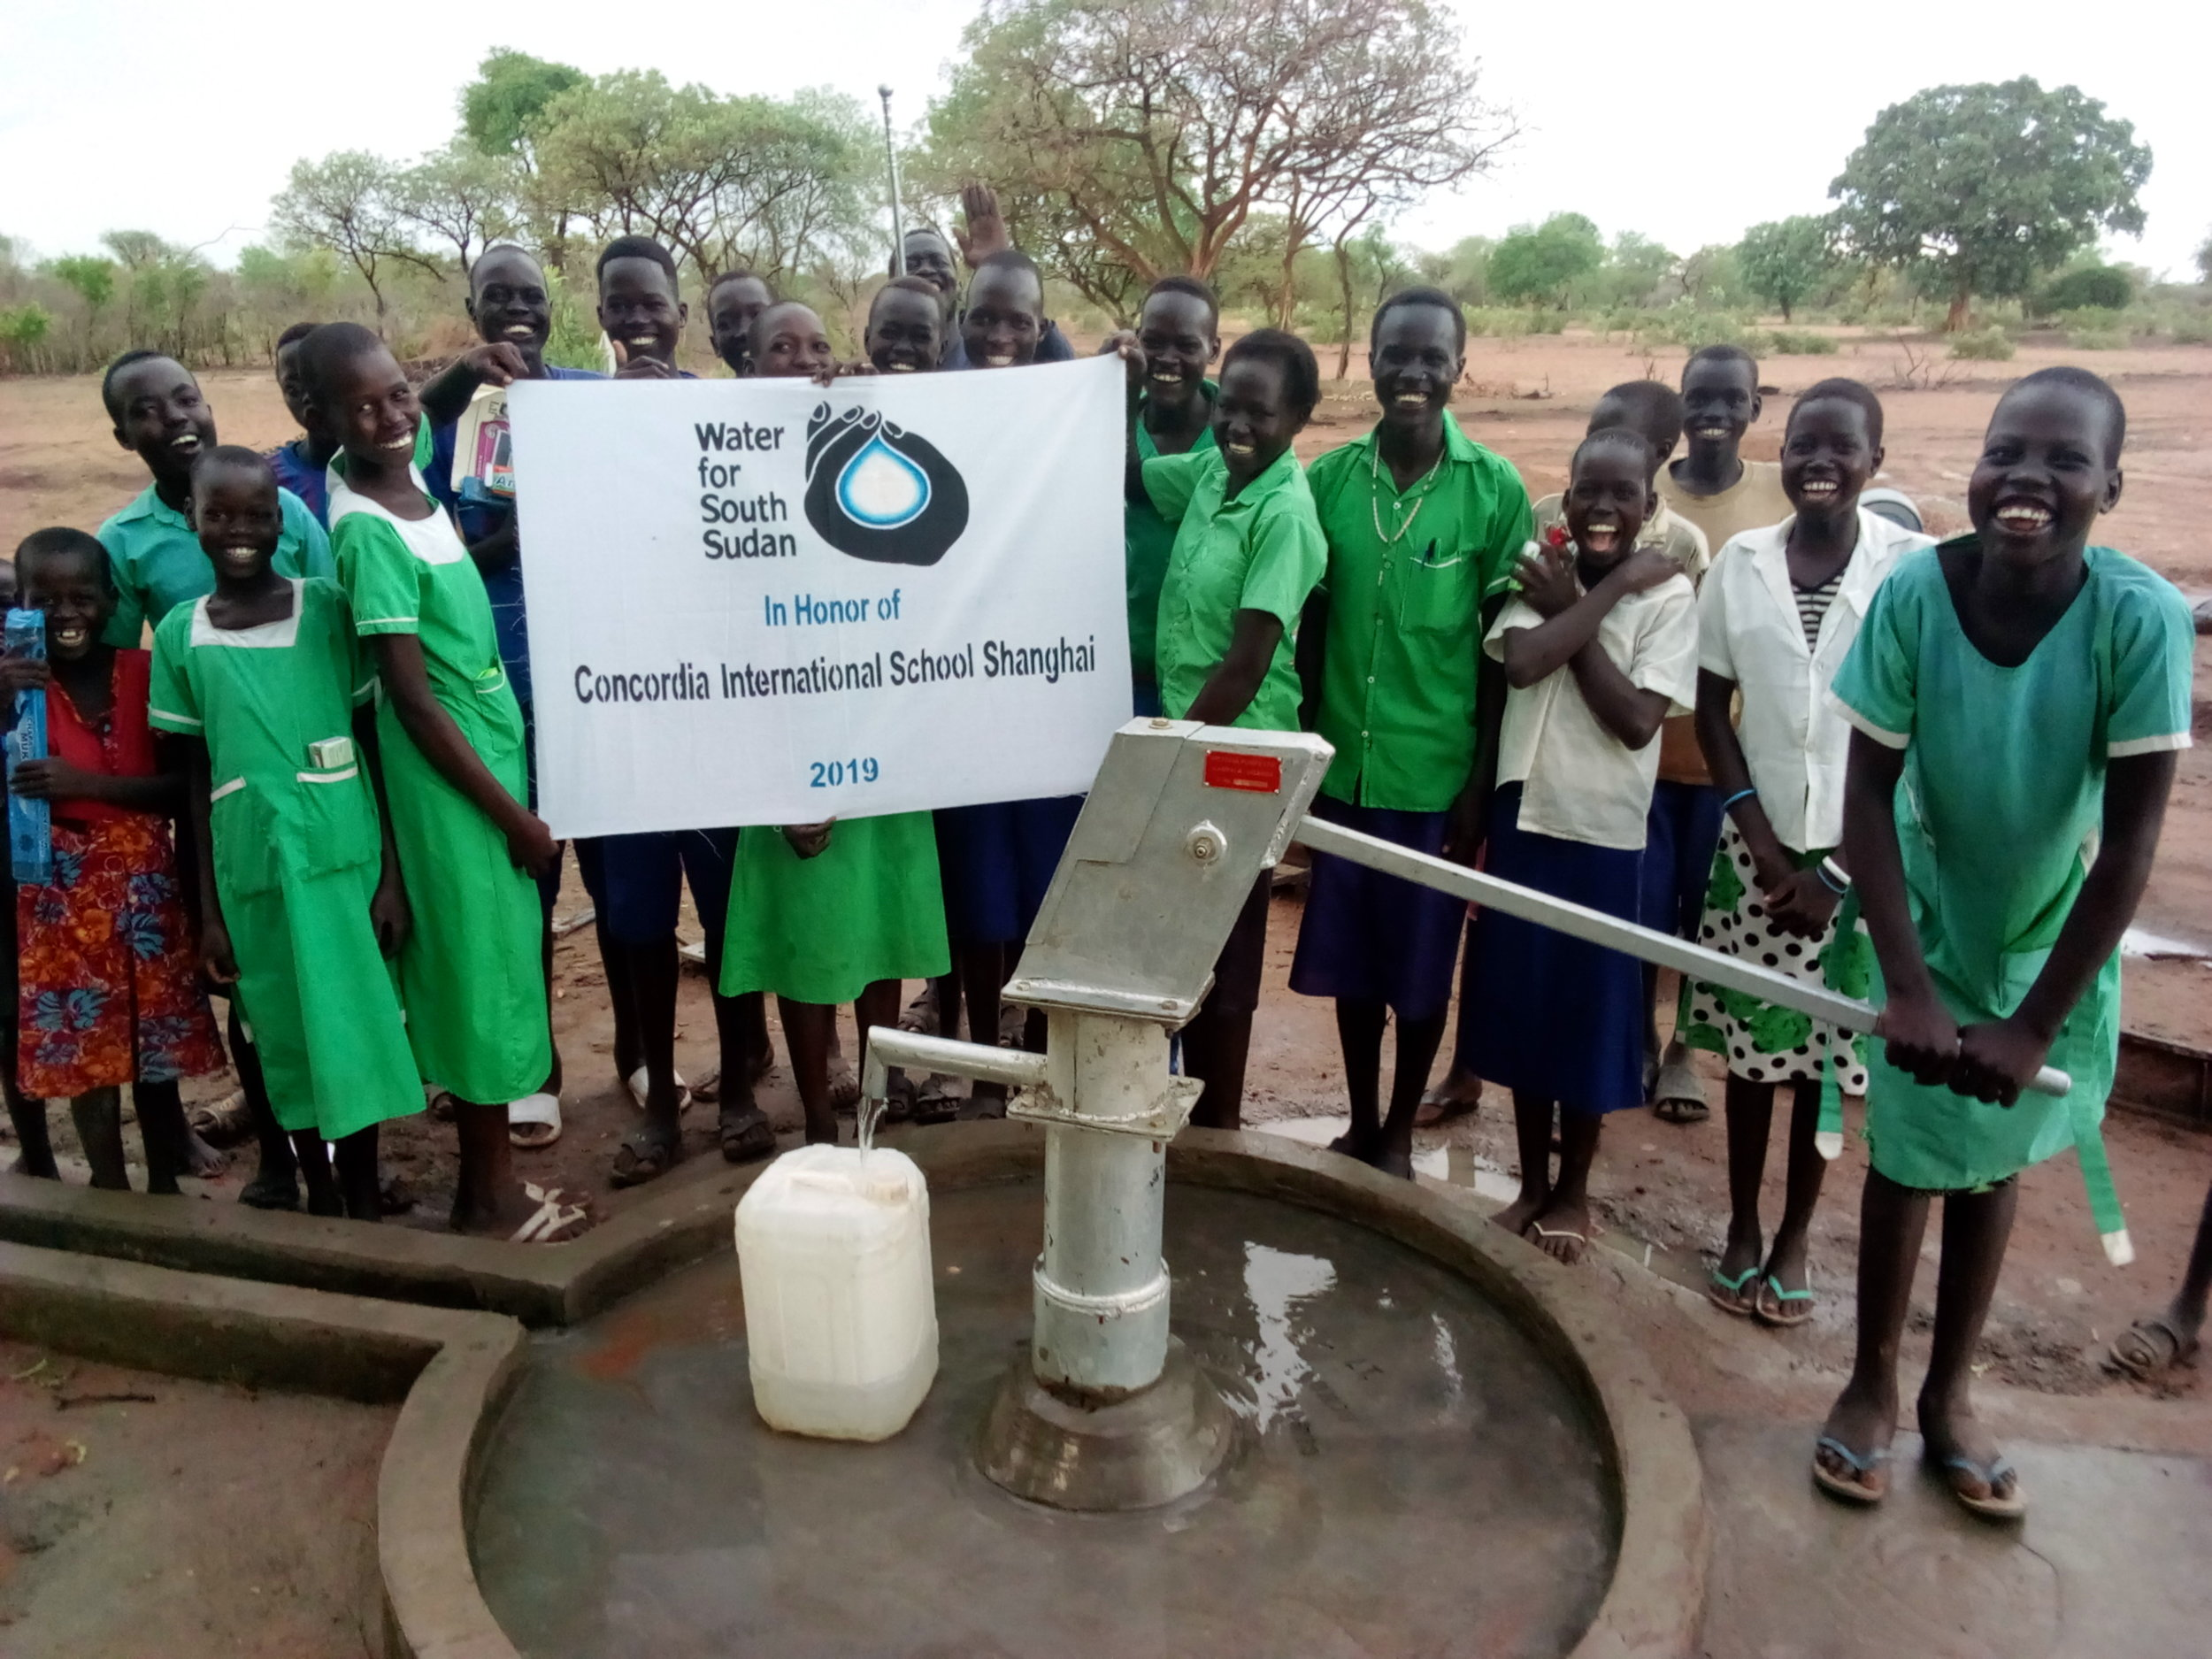 A celebration of the opening of the Concordia well in the village of Mayen-Ruel, Gogrial, South Sudan.